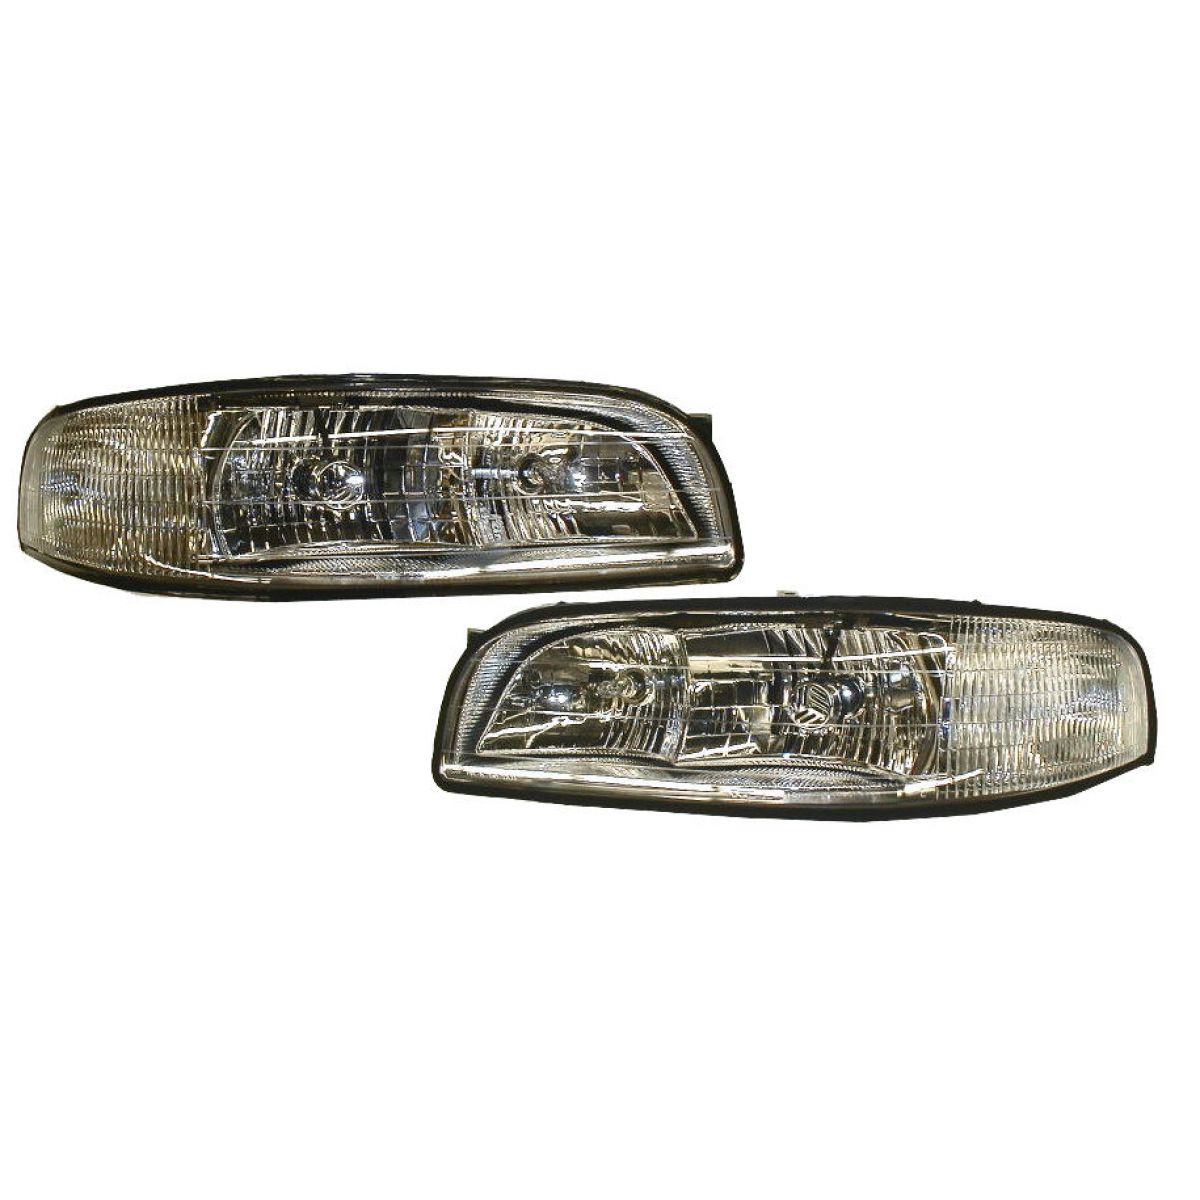 Headlights Headlamps w/ Cornering Lamps Left & Right Pair Set for 97-99 LeSabre